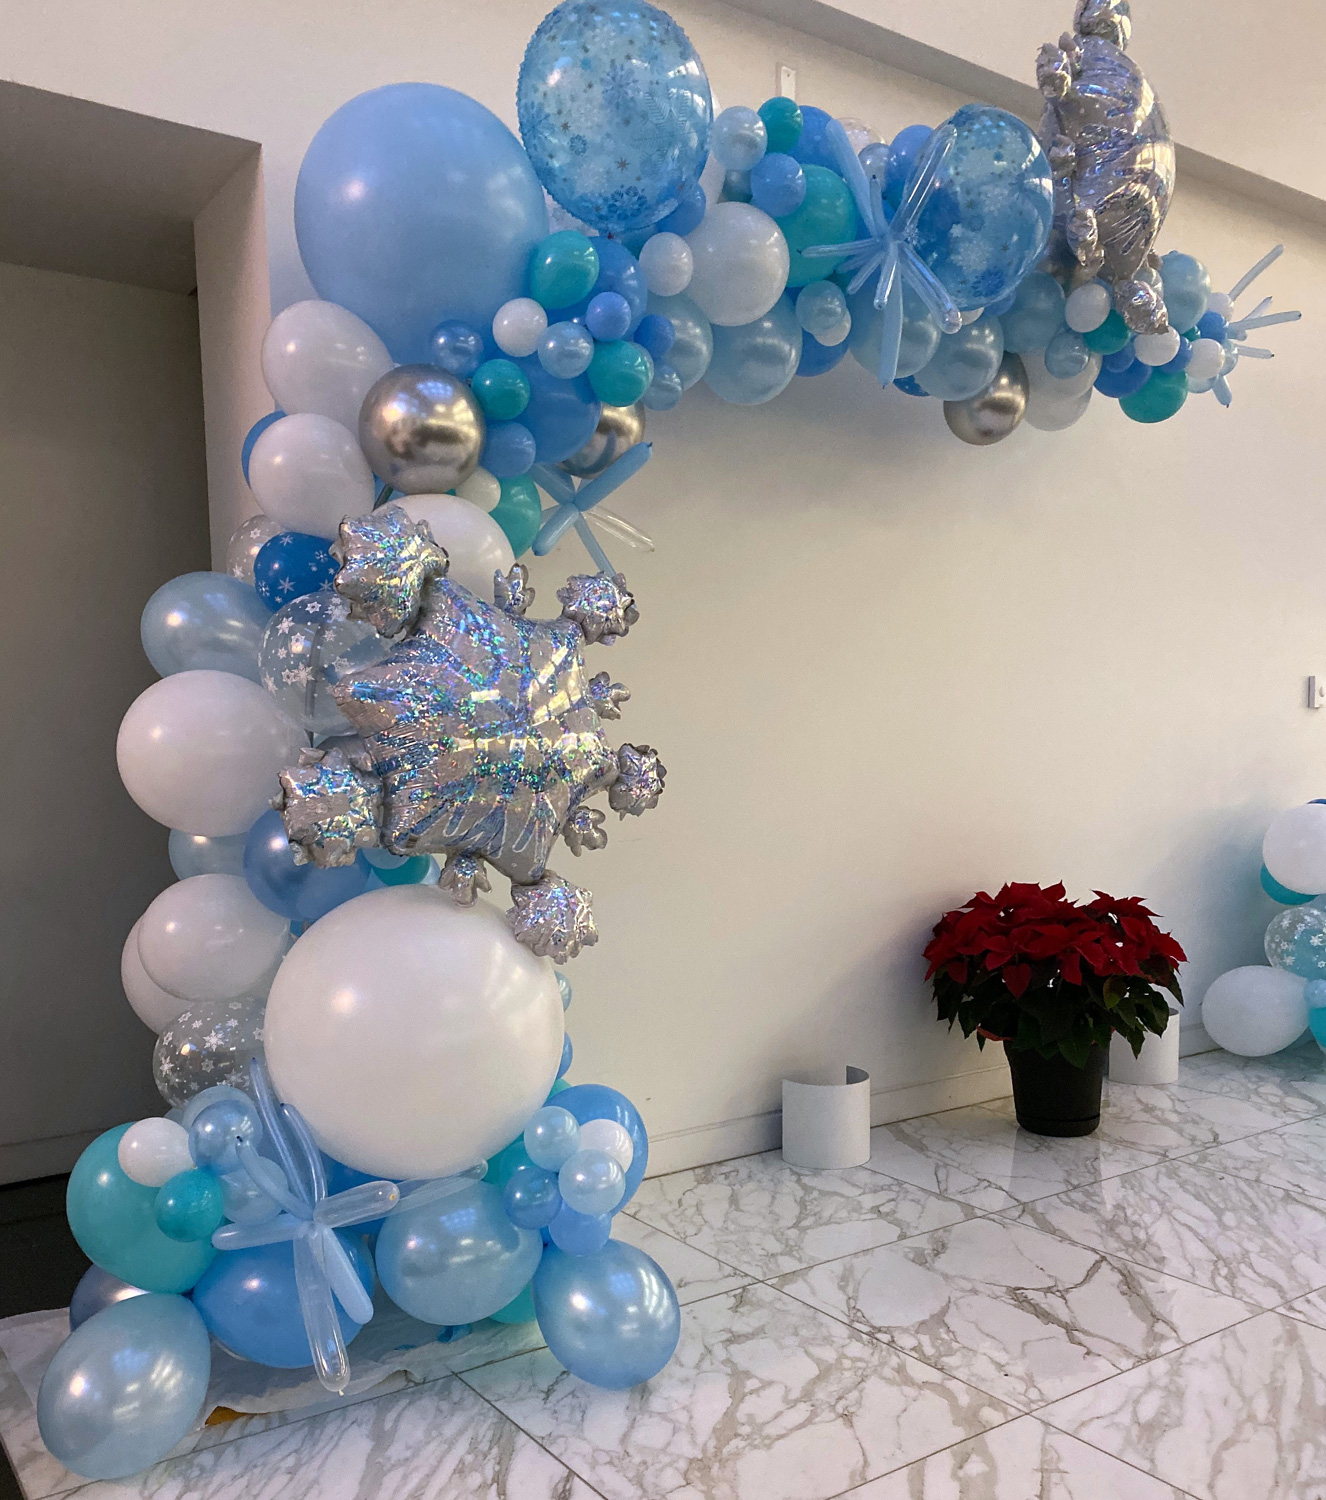 Bay Area Balloon - Snow and Ice Organic Arch